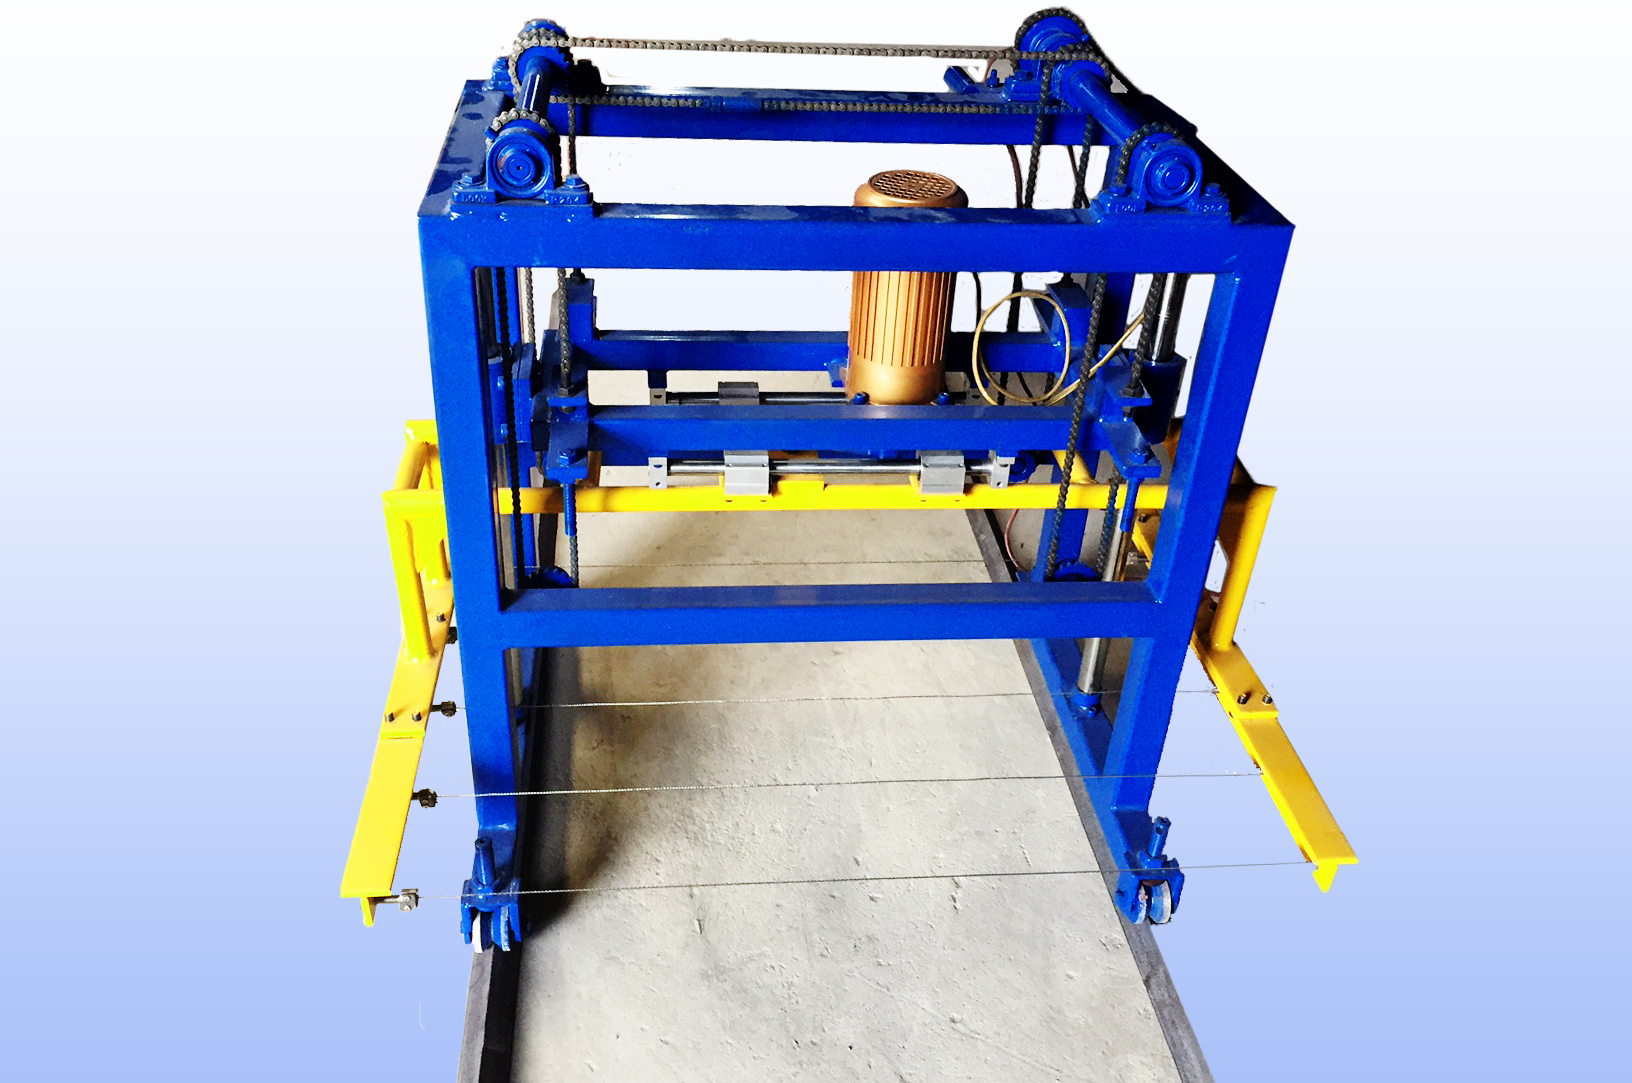 Minicutter Small Compact Clc Block Cutting Machine Electrical Wiring In Cinder Walls Use Wire To Cut The Blocks